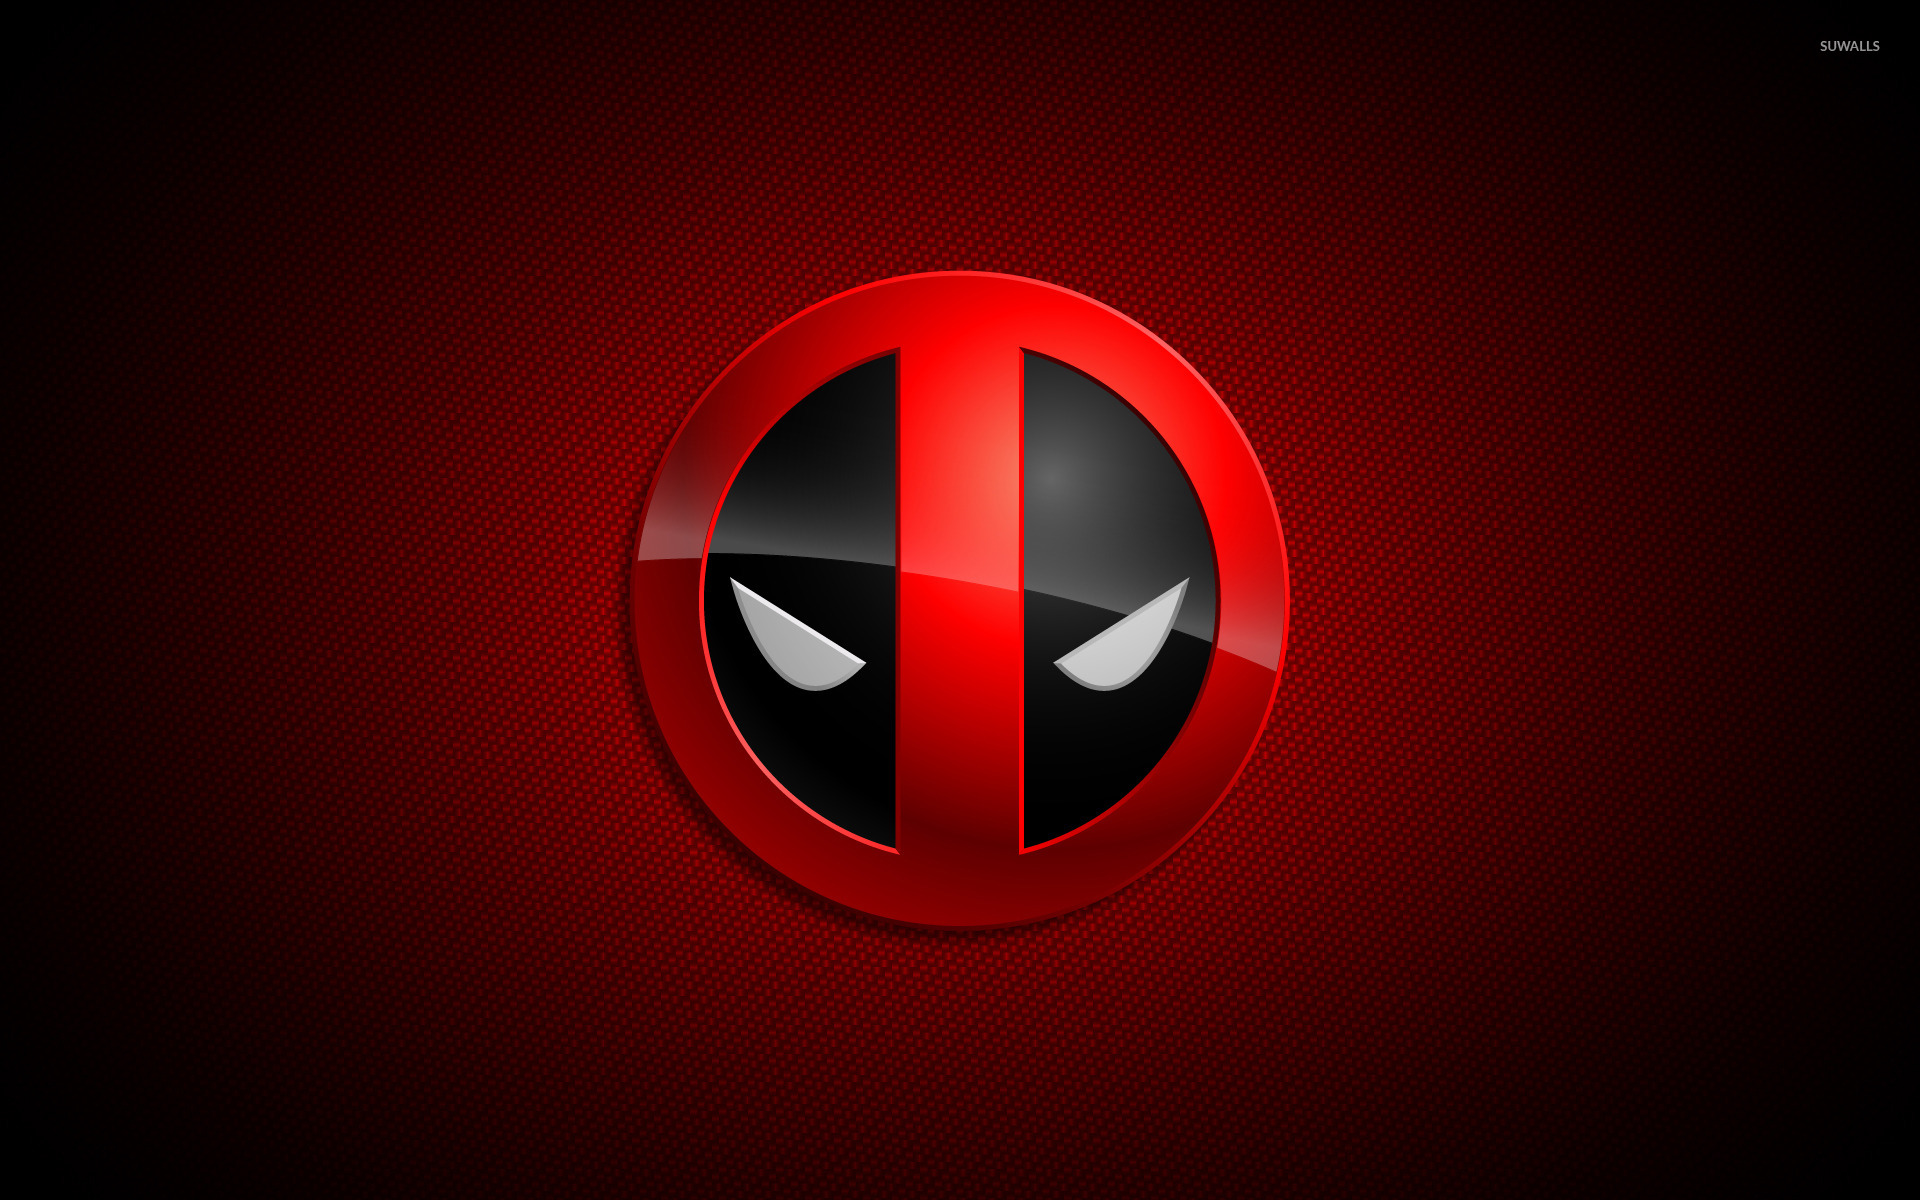 Cable Deadpool wallpaper Game wallpapers 21202